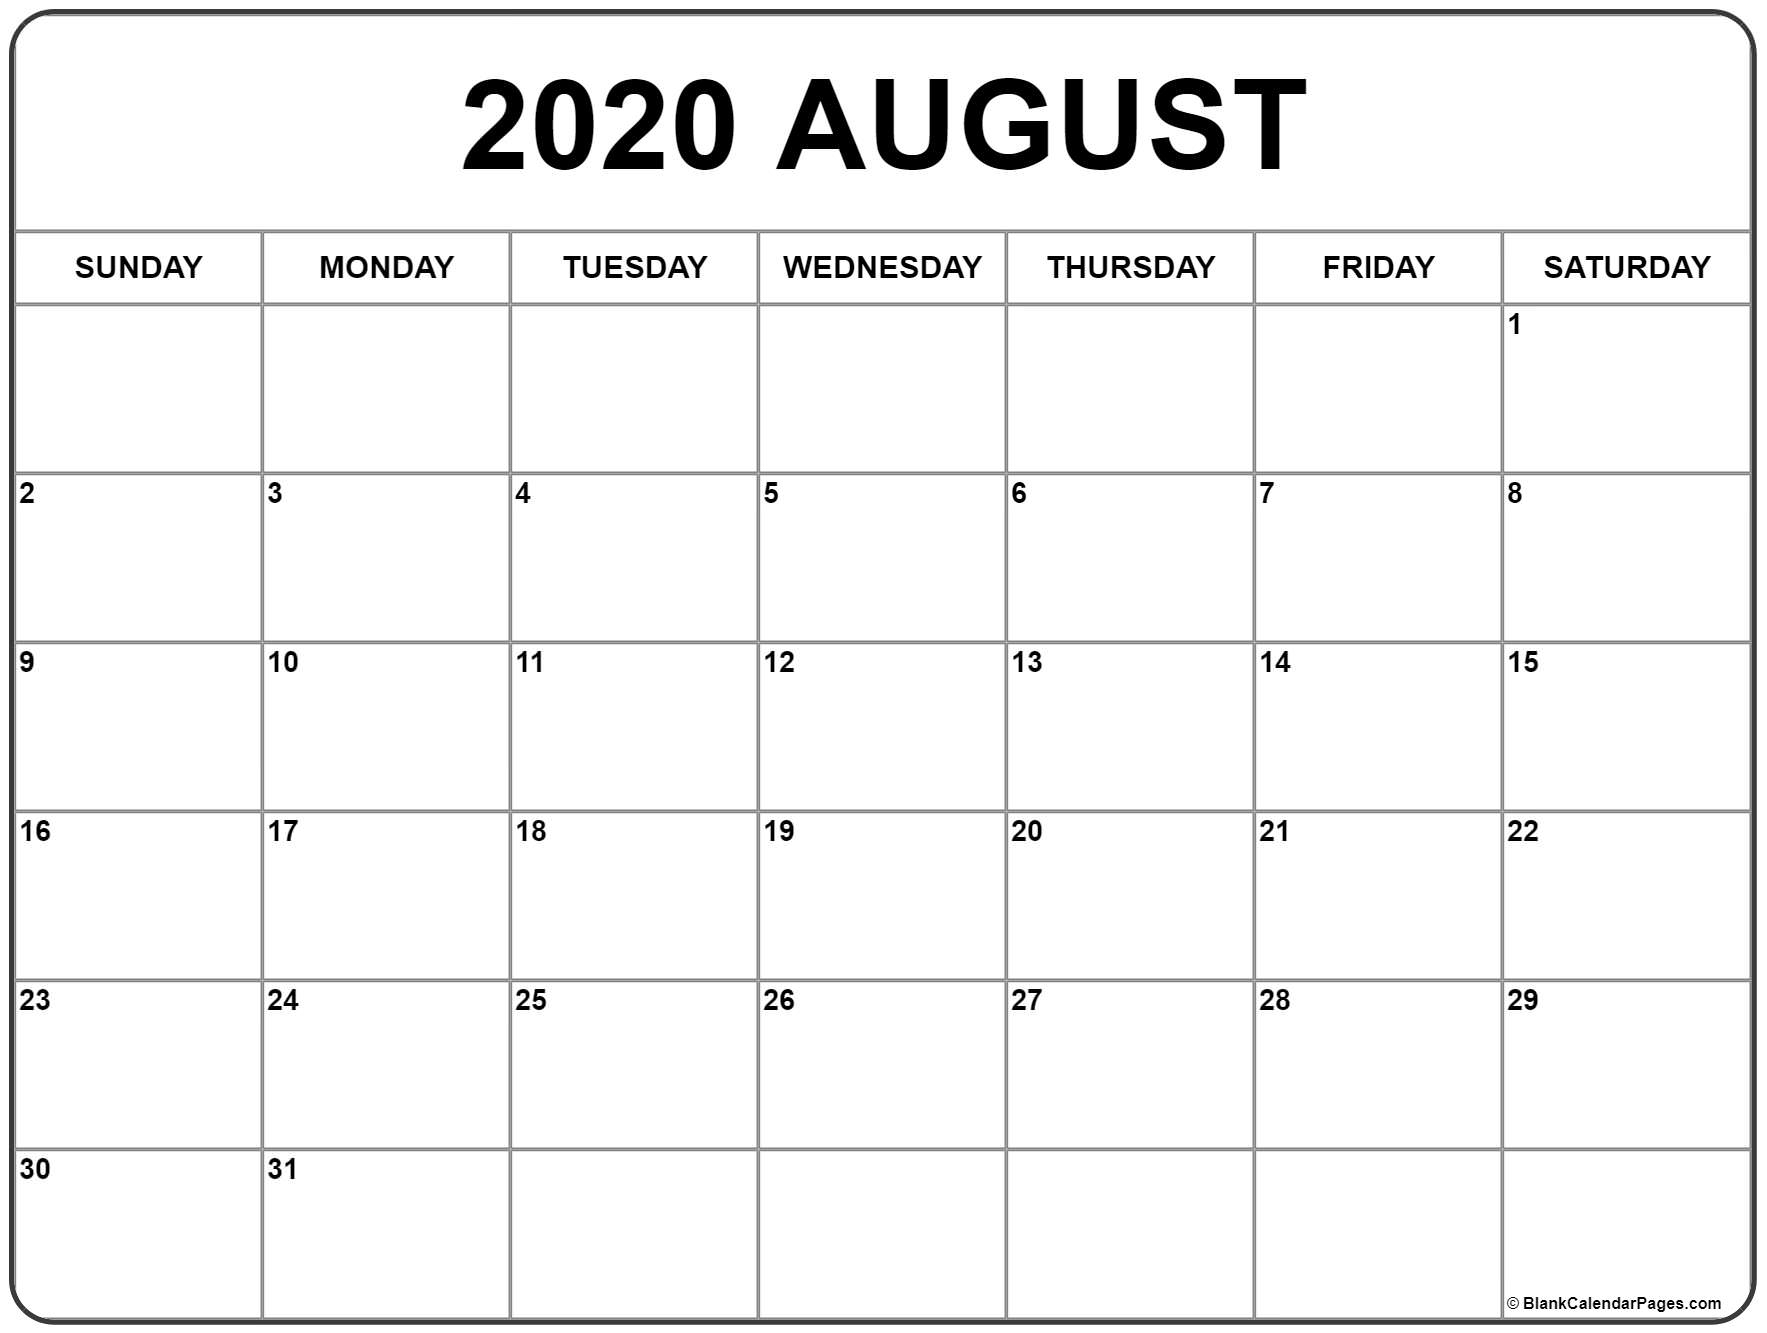 August 2020 Calendar | Free Printable Monthly Calendars with regard to Kid Freiendly August 2020 Calendars